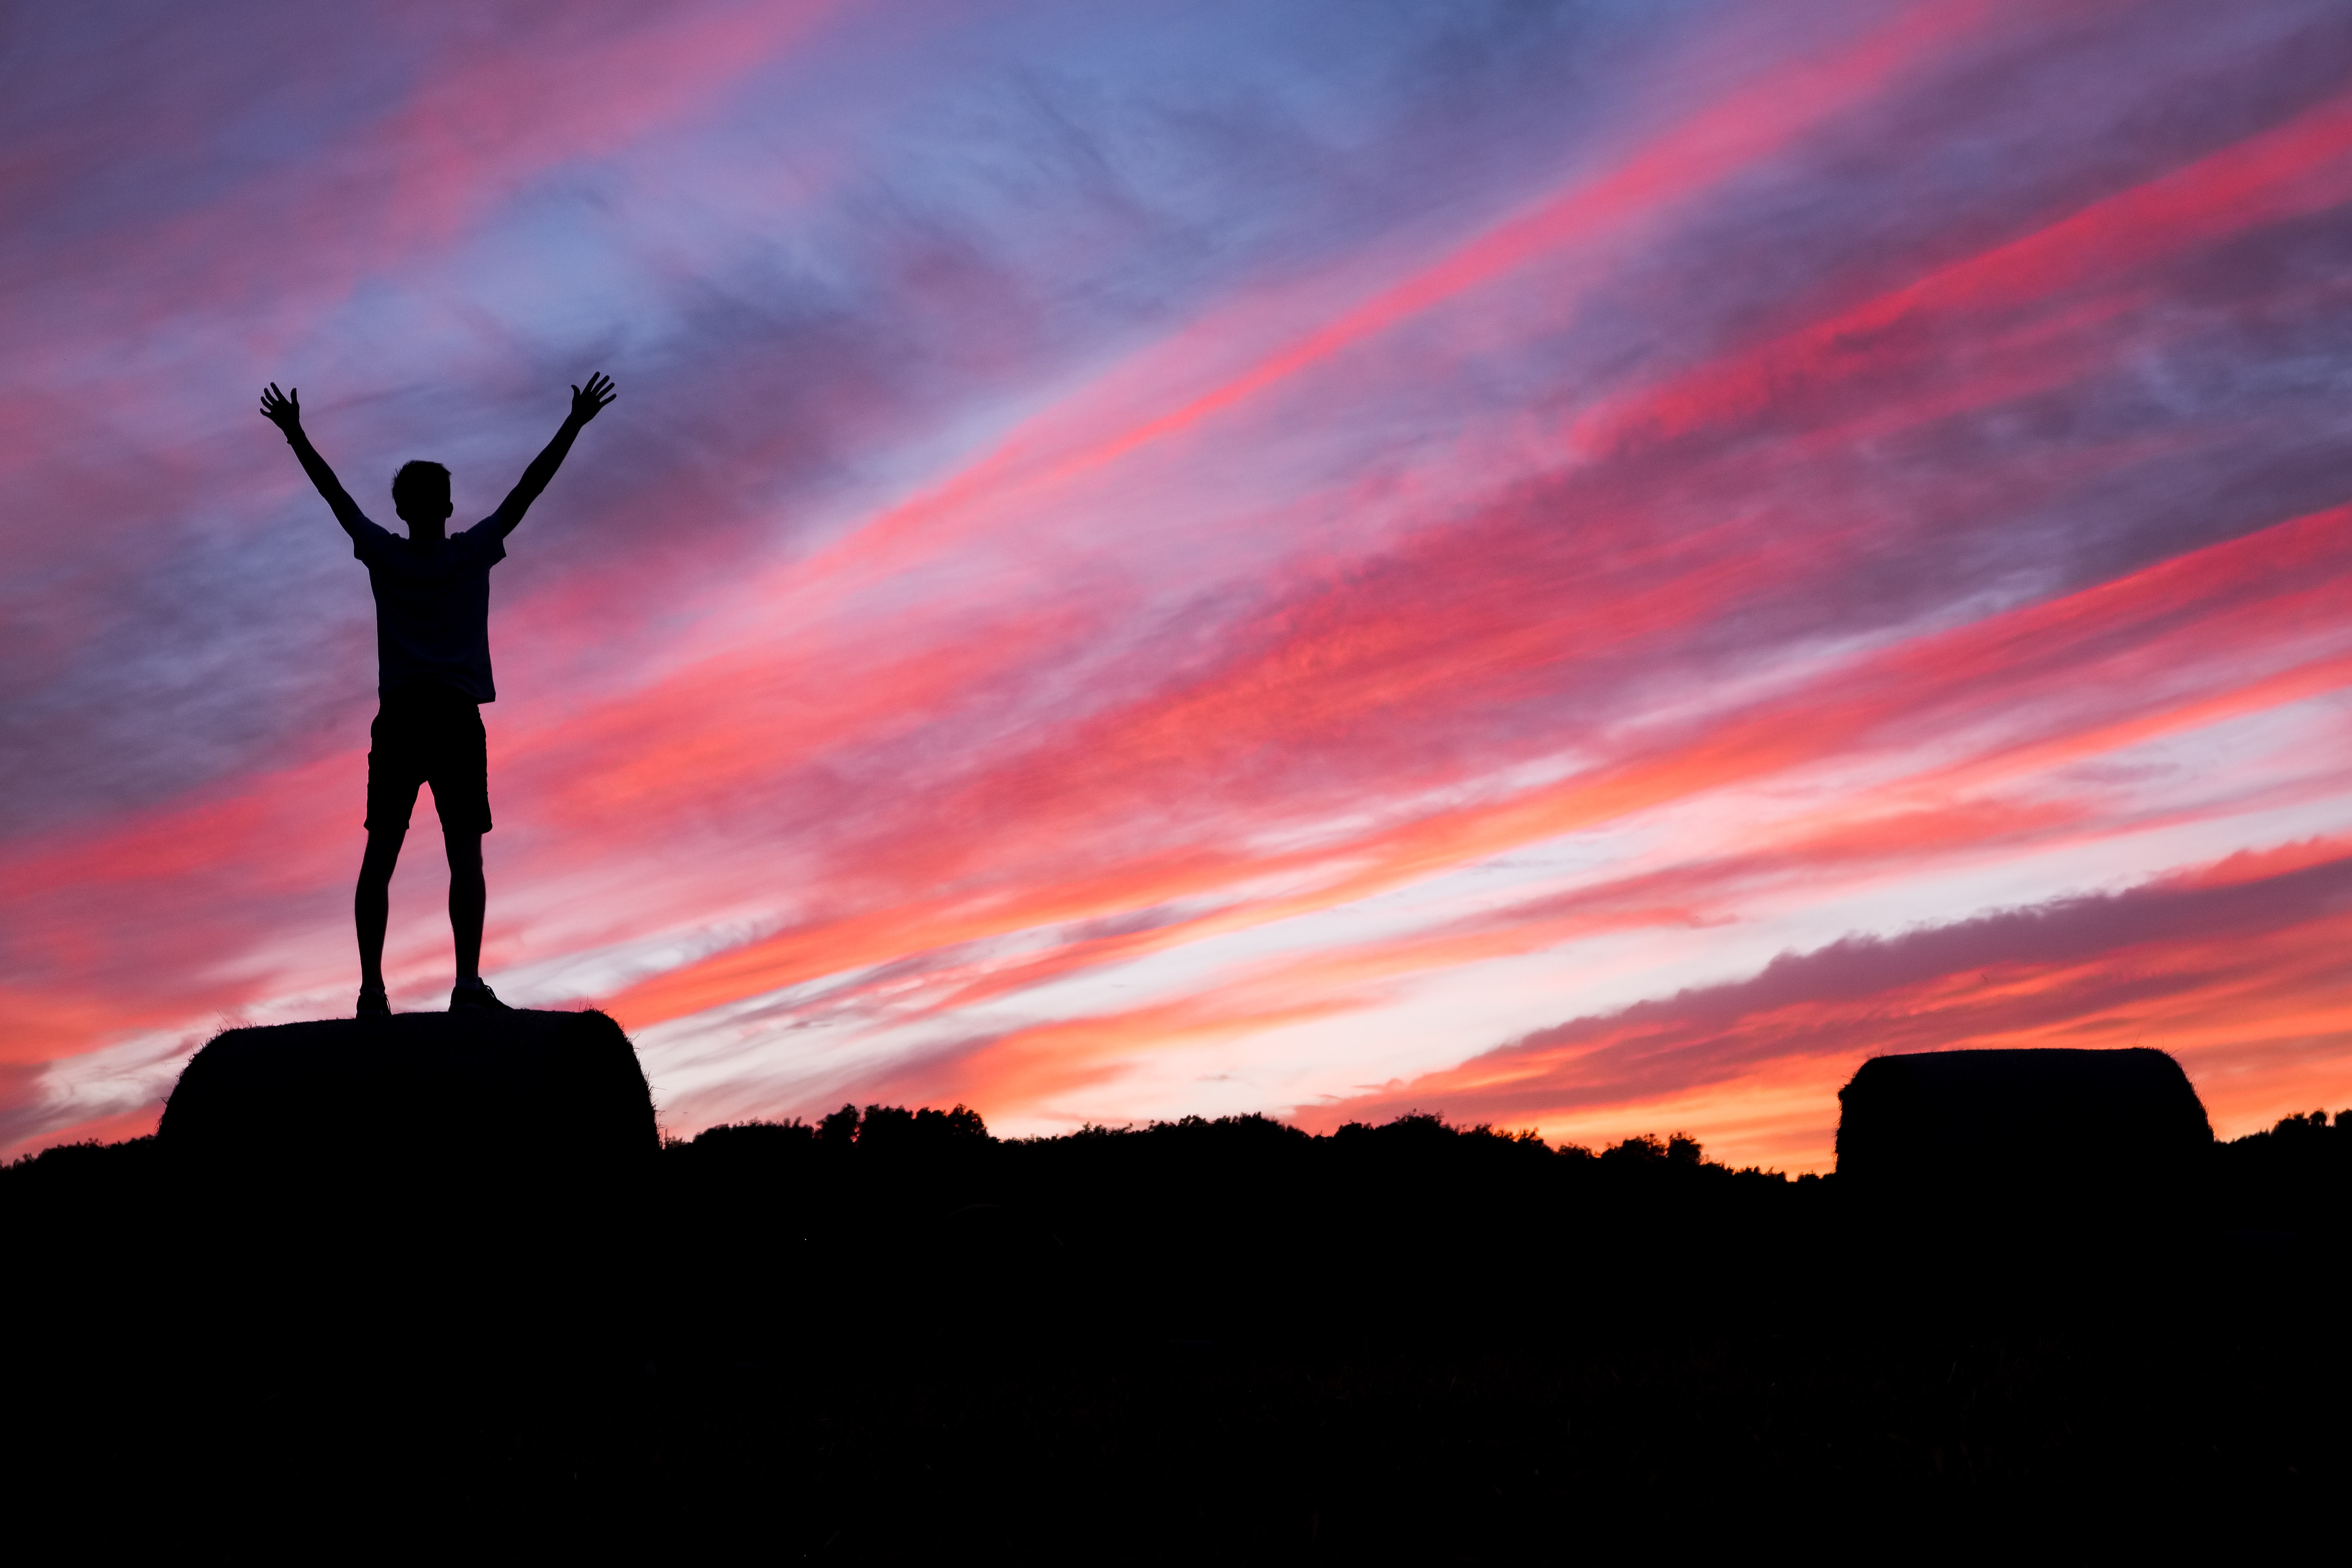 A silhouette of a man lifting up his hands while while standing on a rock at sunrise